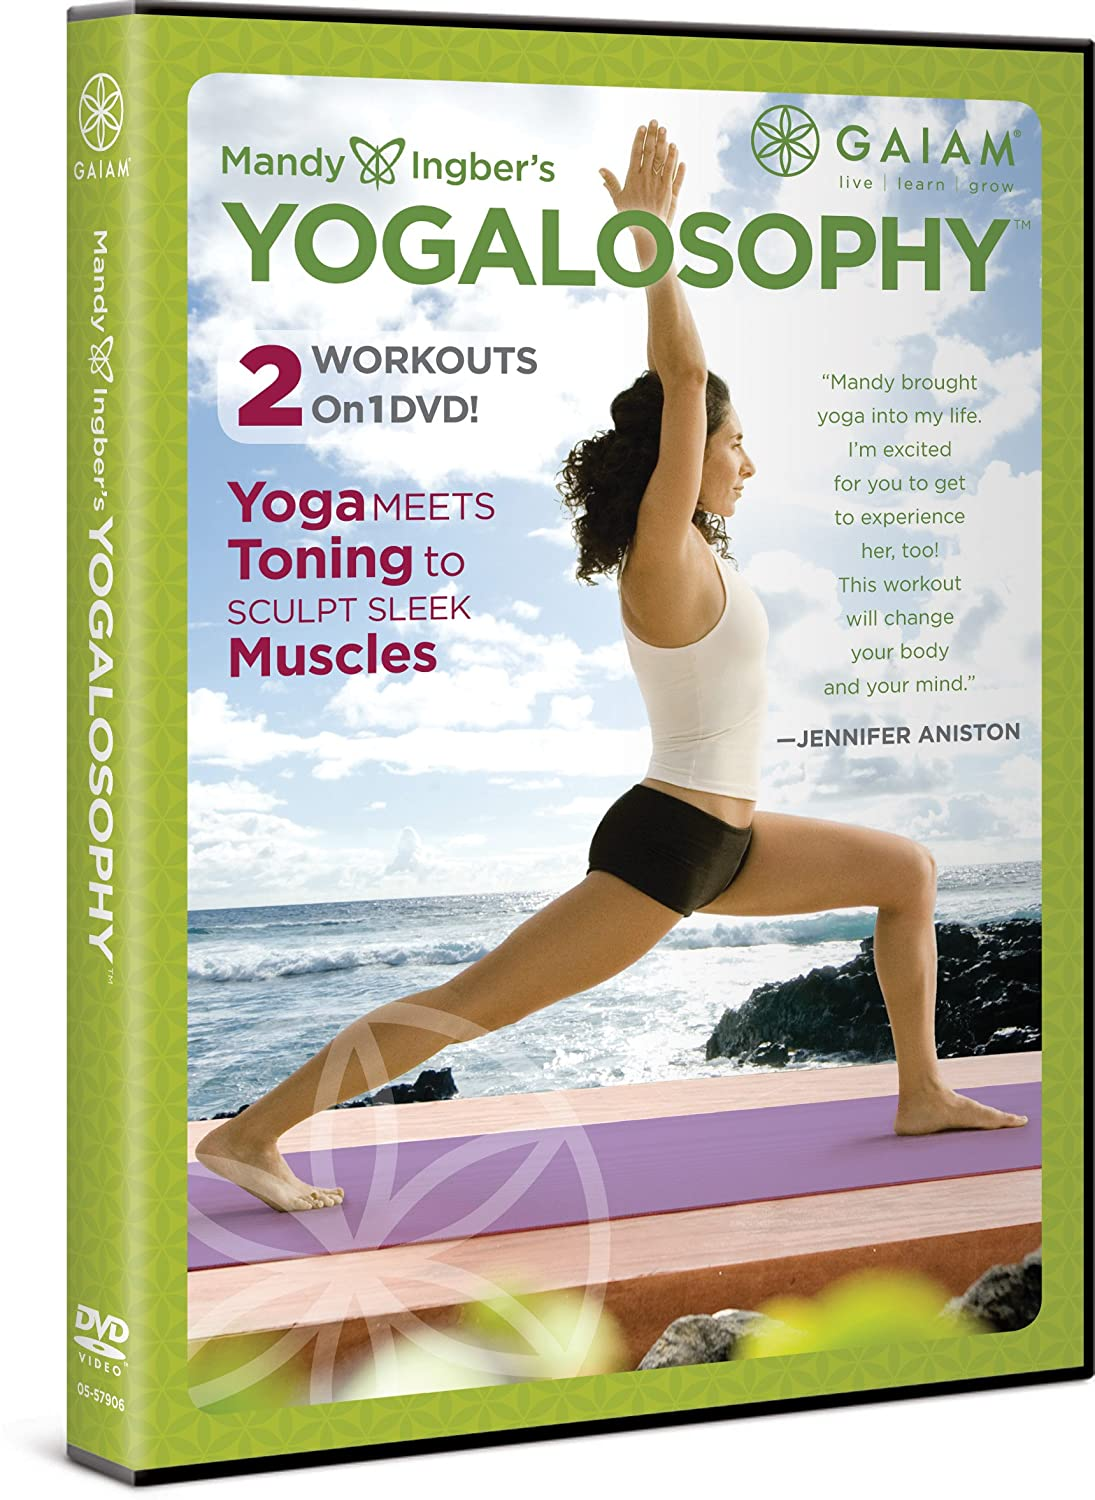 Popular product Yogalosophy sold out